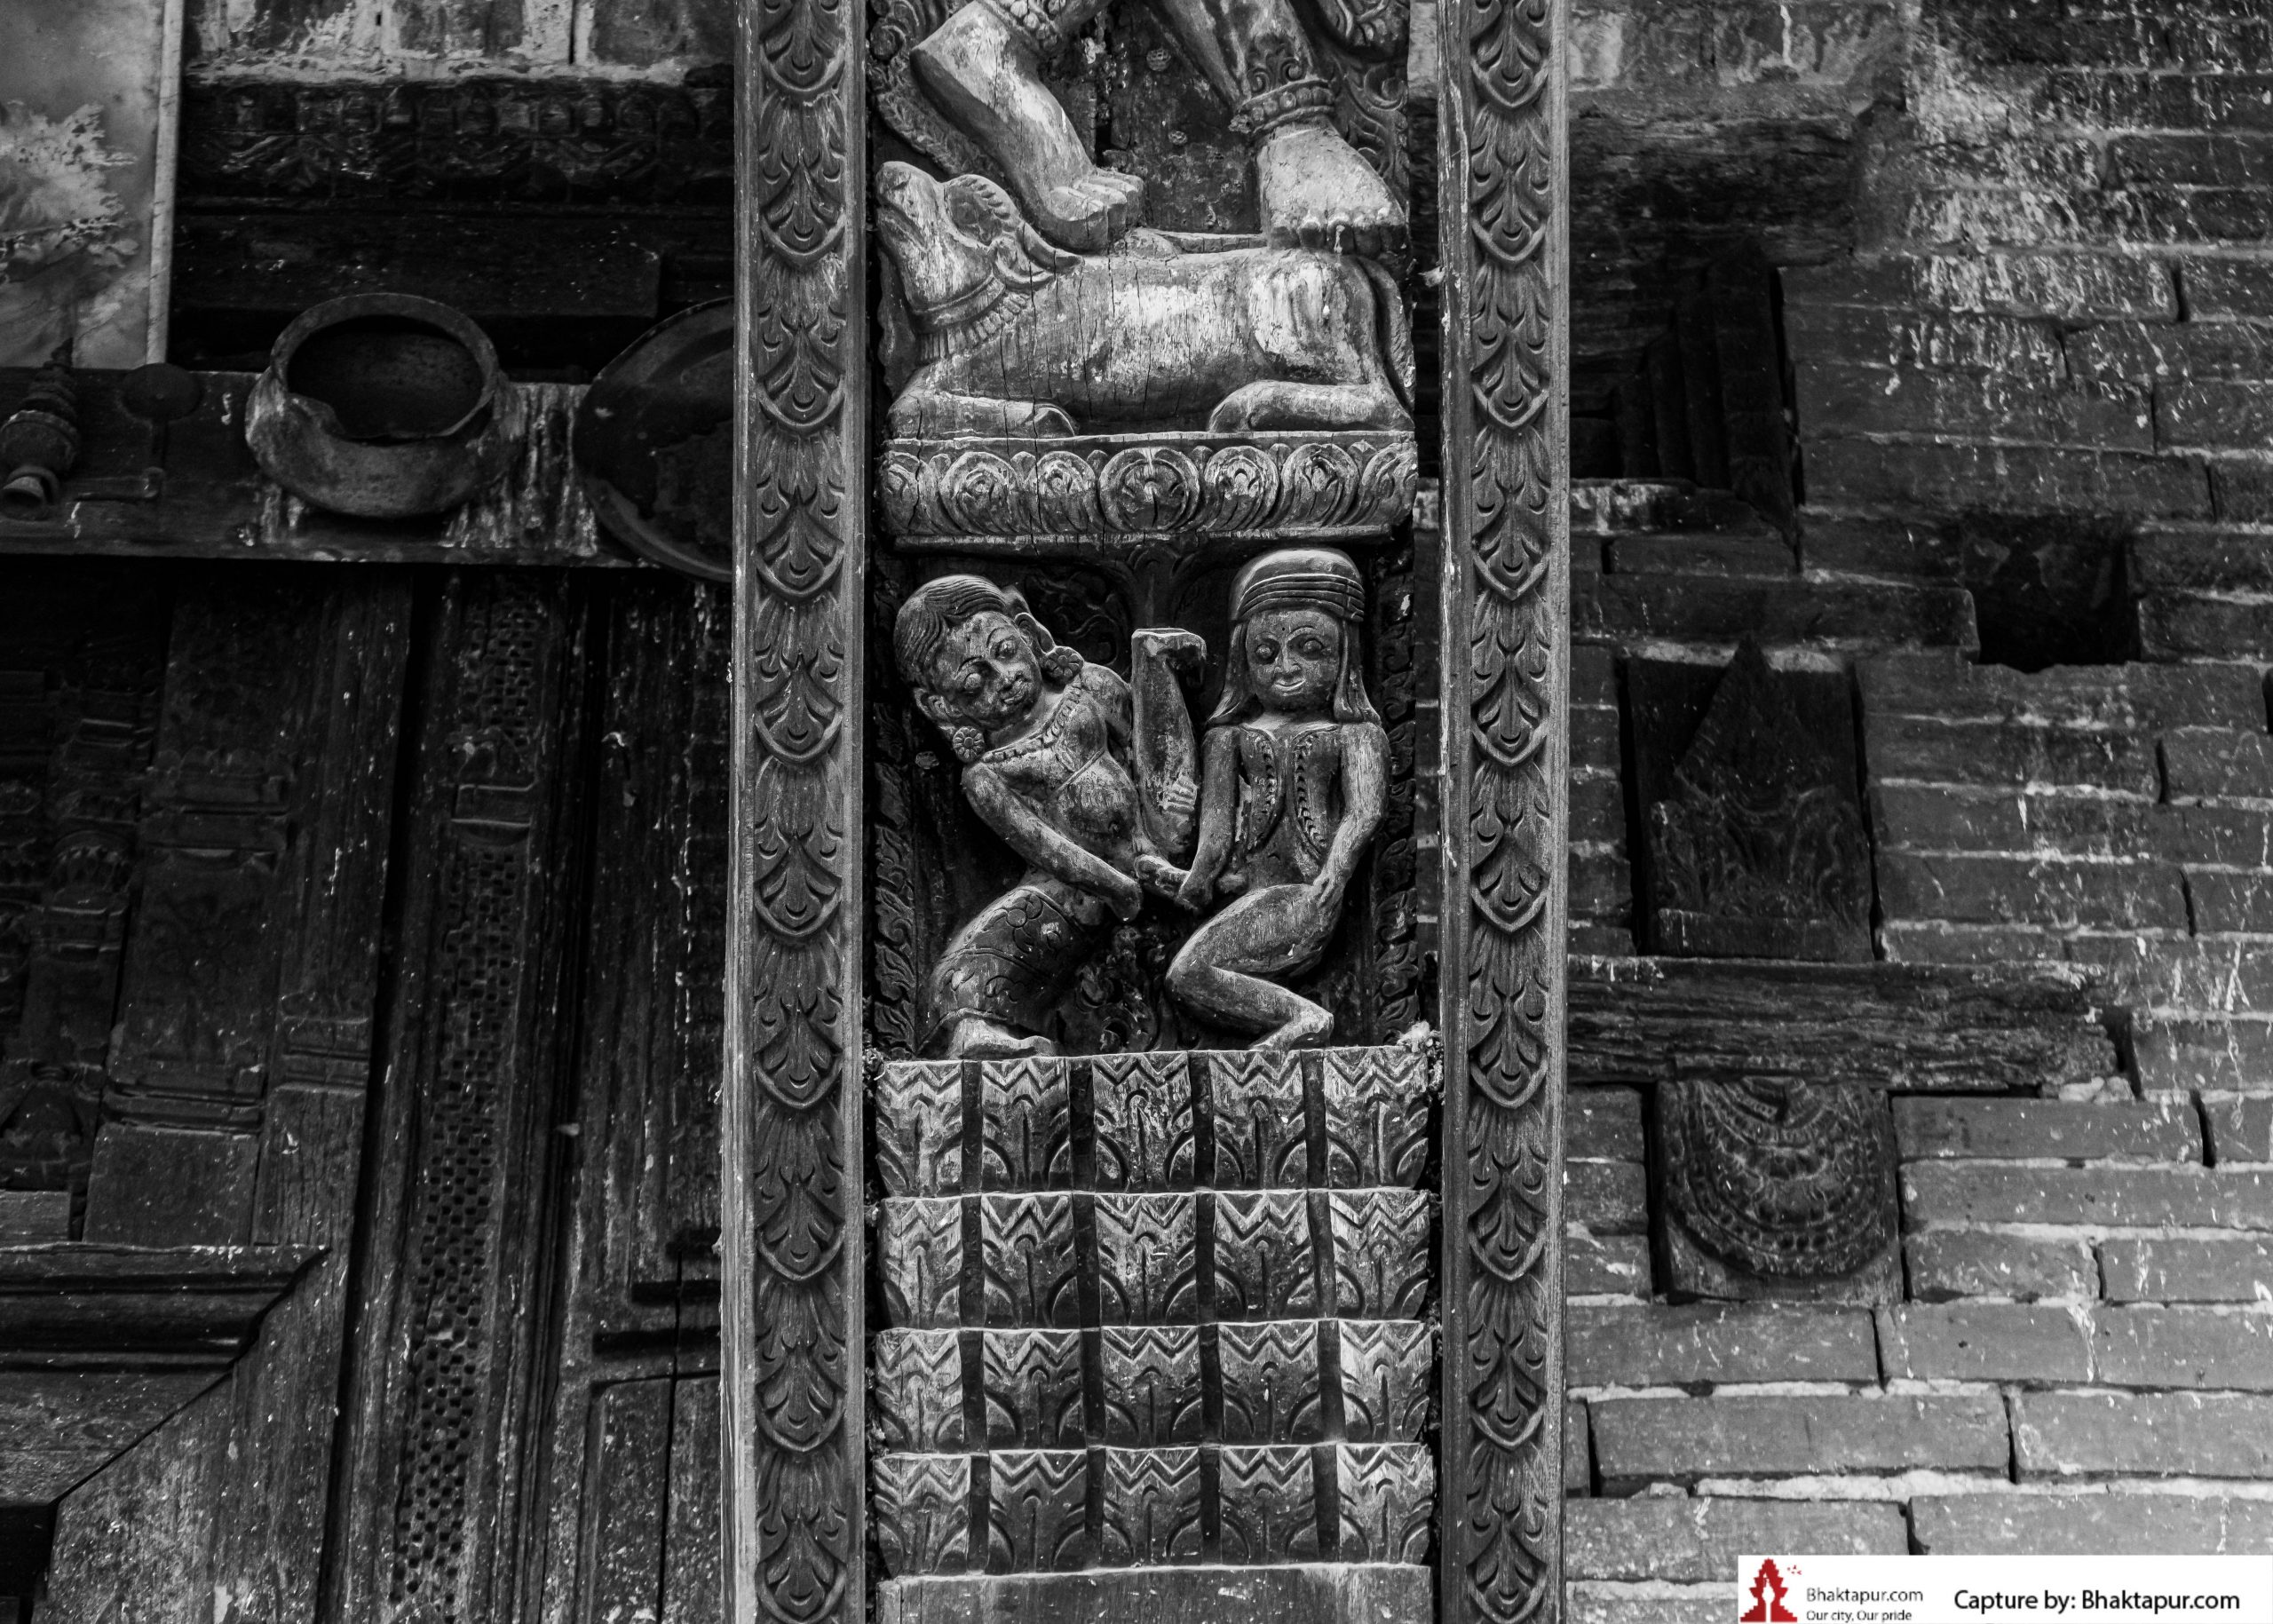 https://www.bhaktapur.com/wp-content/uploads/2021/08/erotic-carving-90-of-137-scaled.jpg